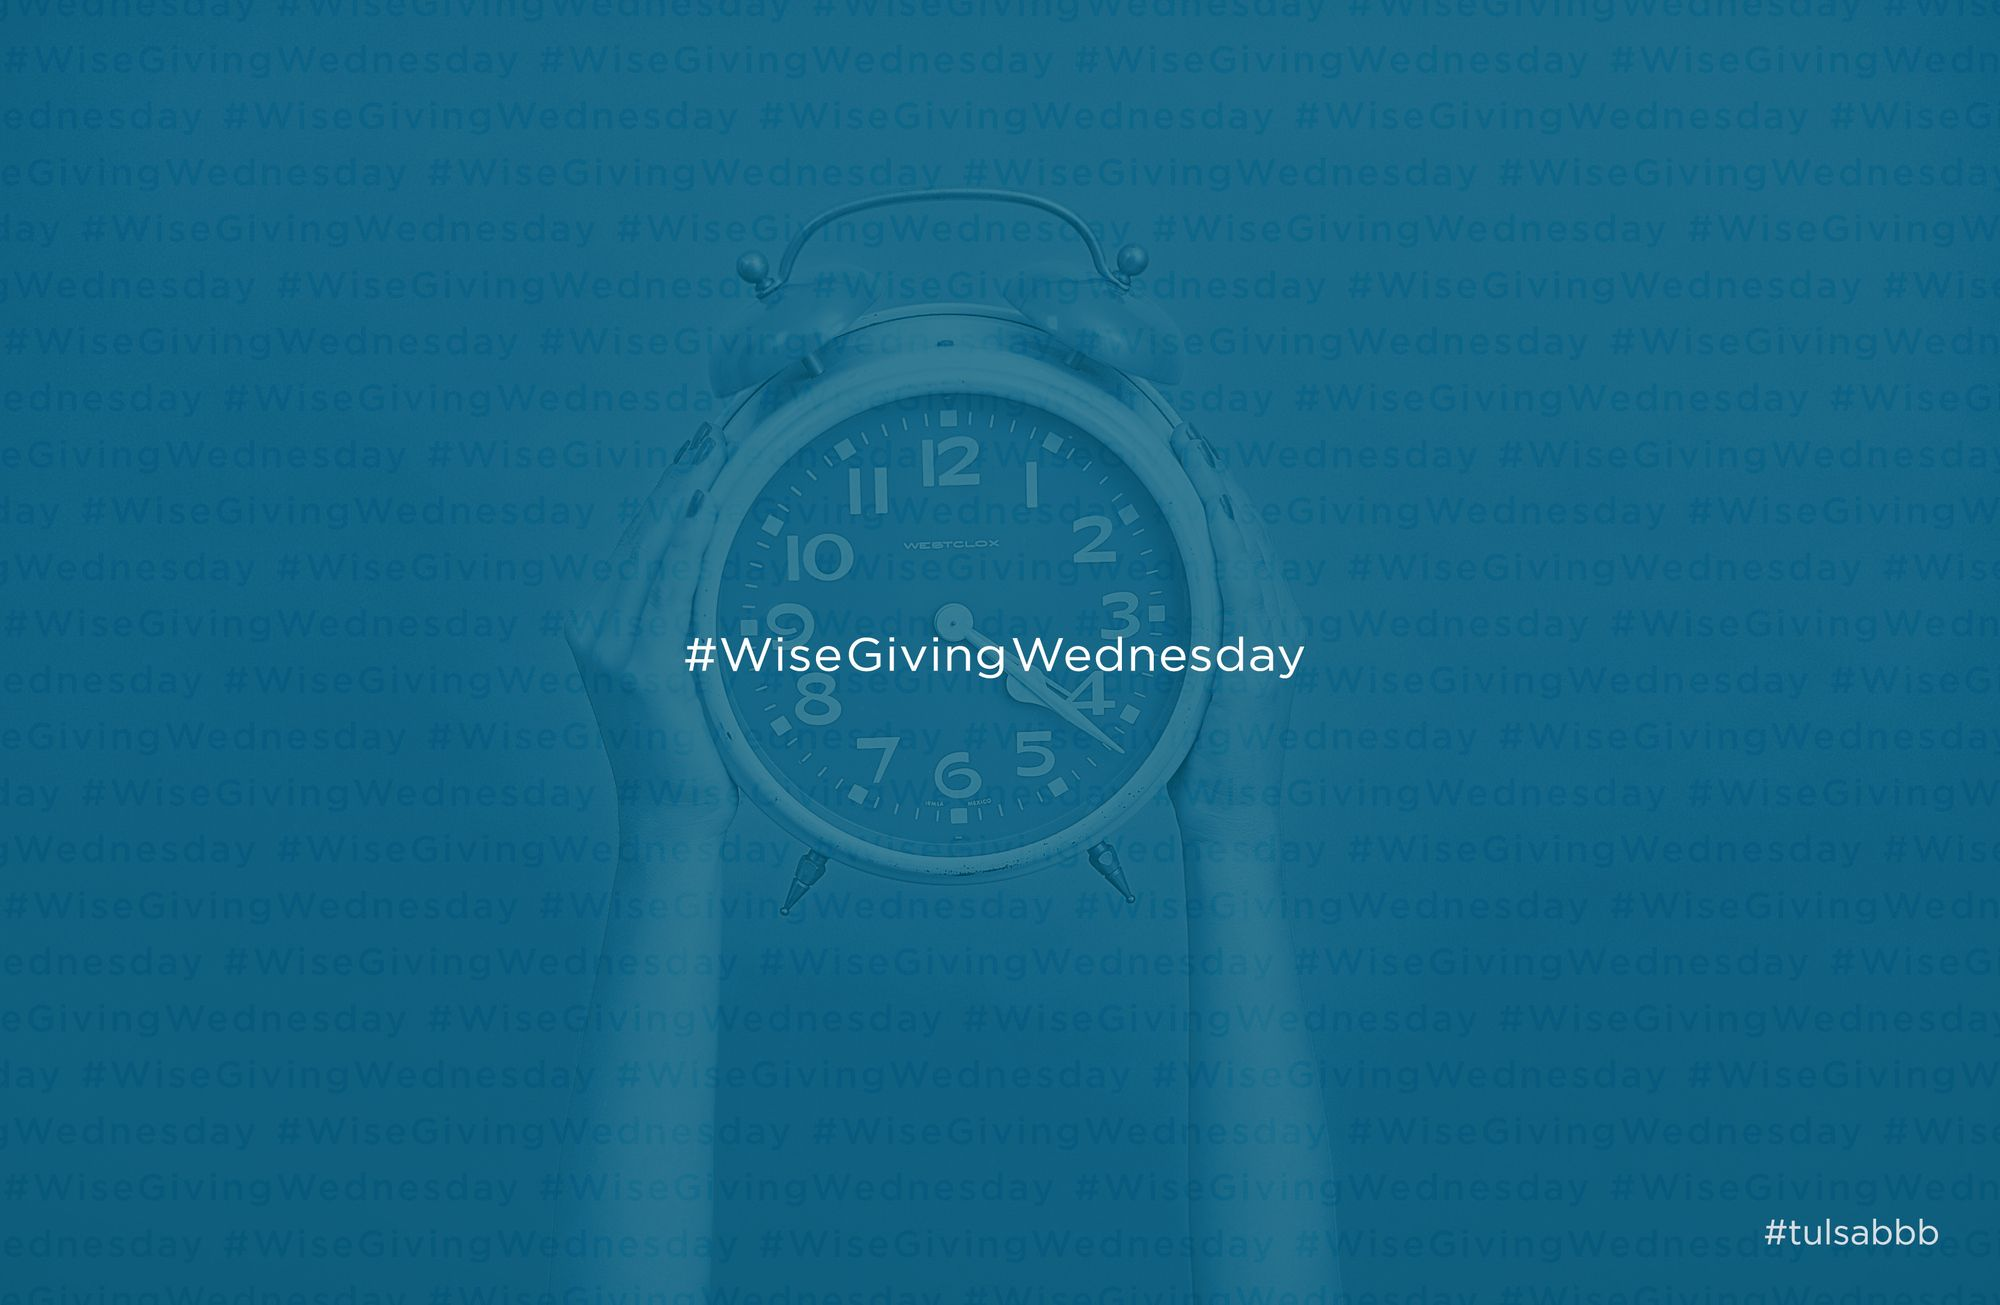 Considering making a charitable donation before the end of the year? Make sure to read today's #WiseGivingWednesday article for tips on last minute donating.  #BBB #StartWithTrust #WiseGiving #CharitableGiving